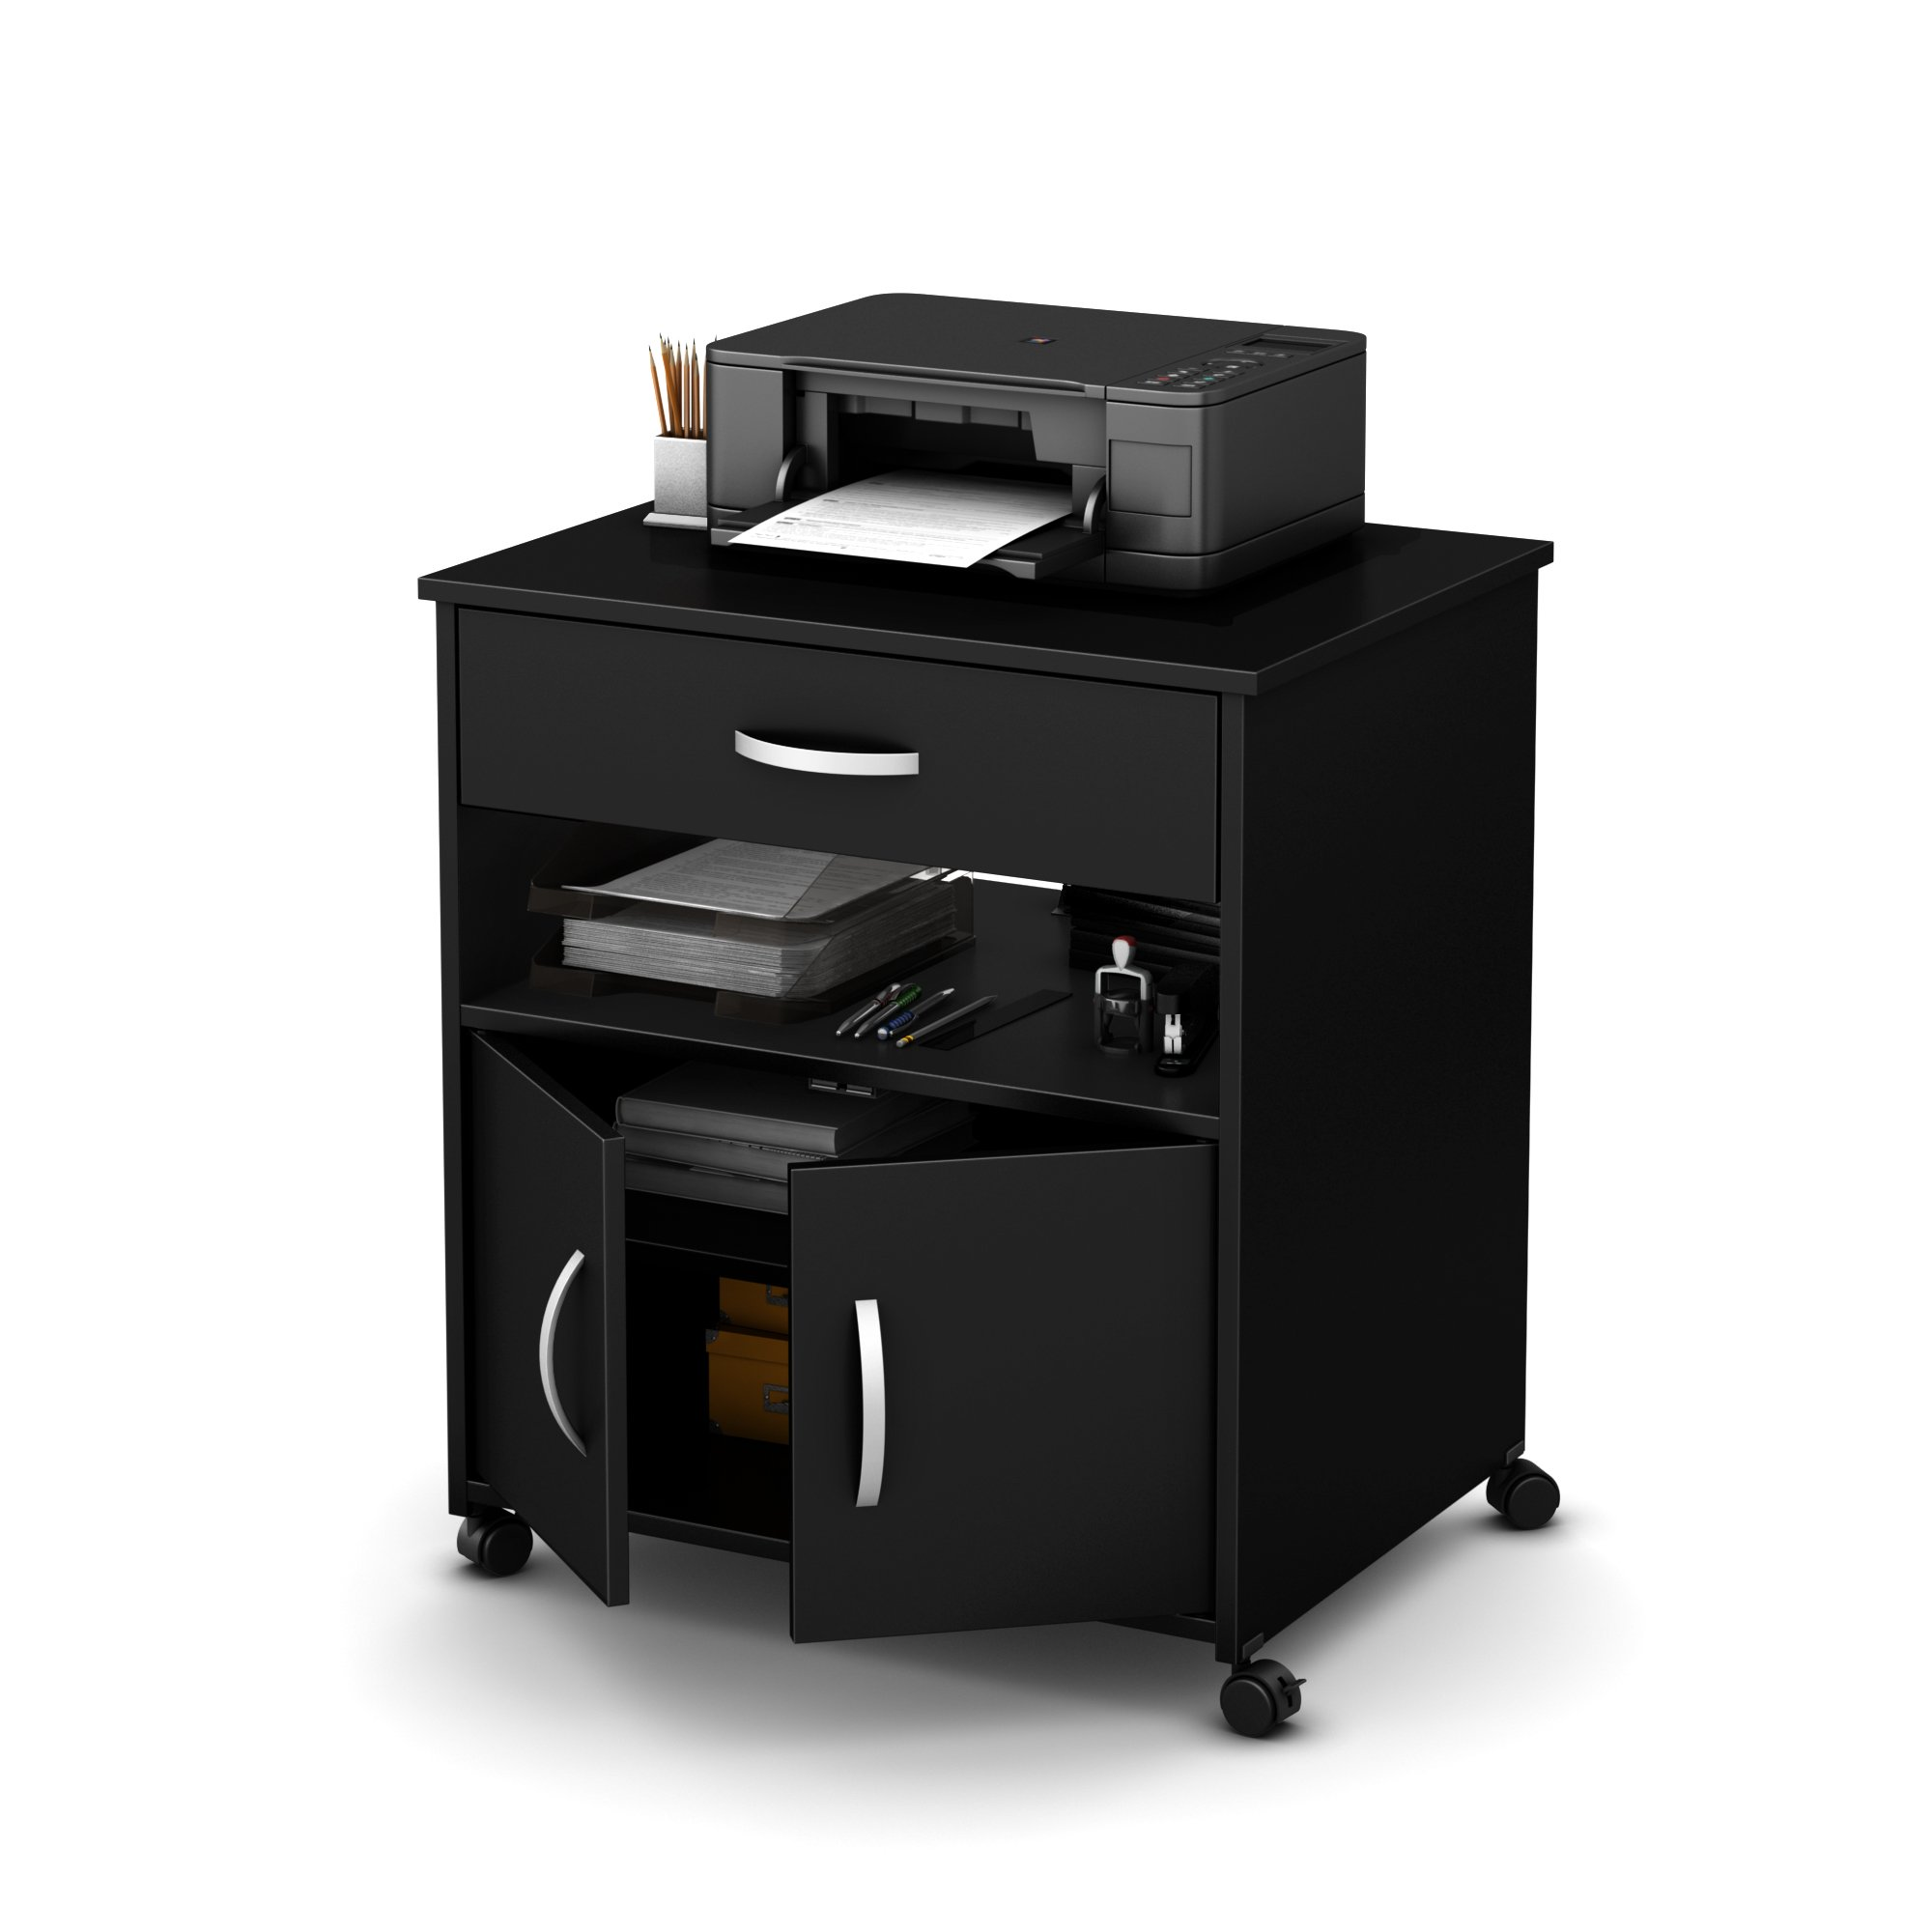 South Shore Axess Printer Cart on Wheels, Pure Black